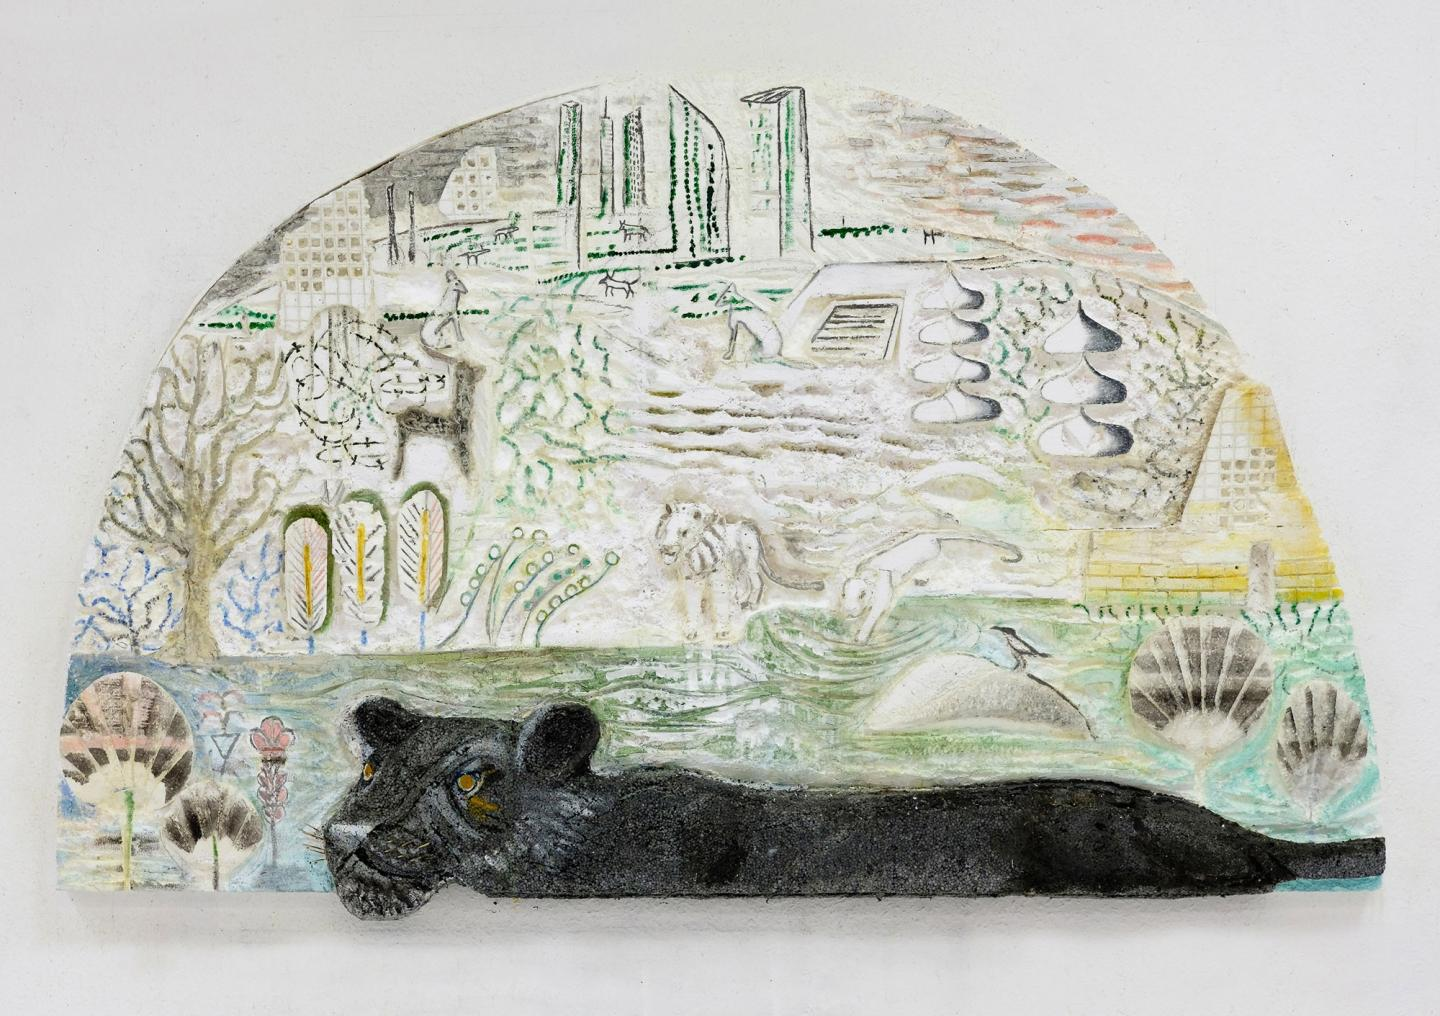 Lin May Saeed, Panther Relief, 2017